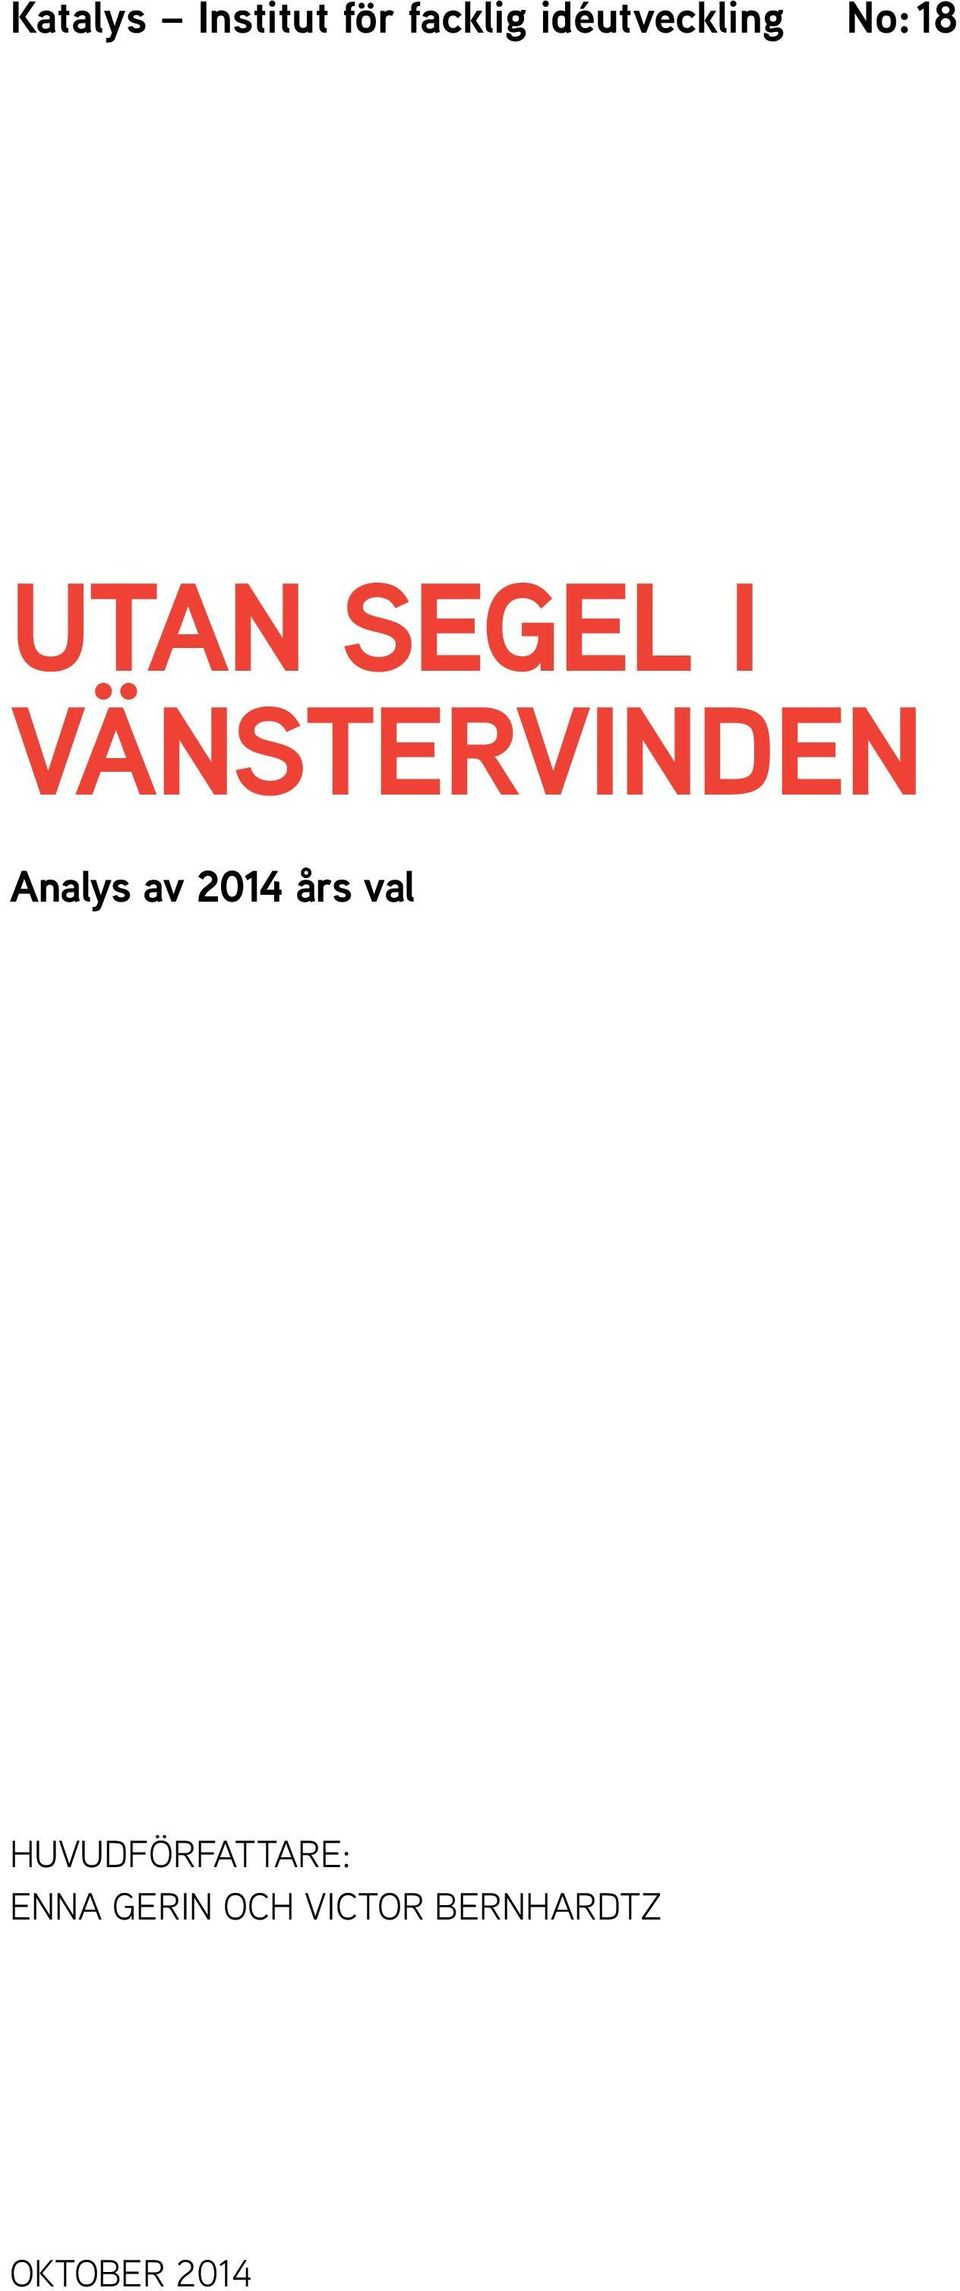 VÄNSTERVINDEN Analys av 2014 års val